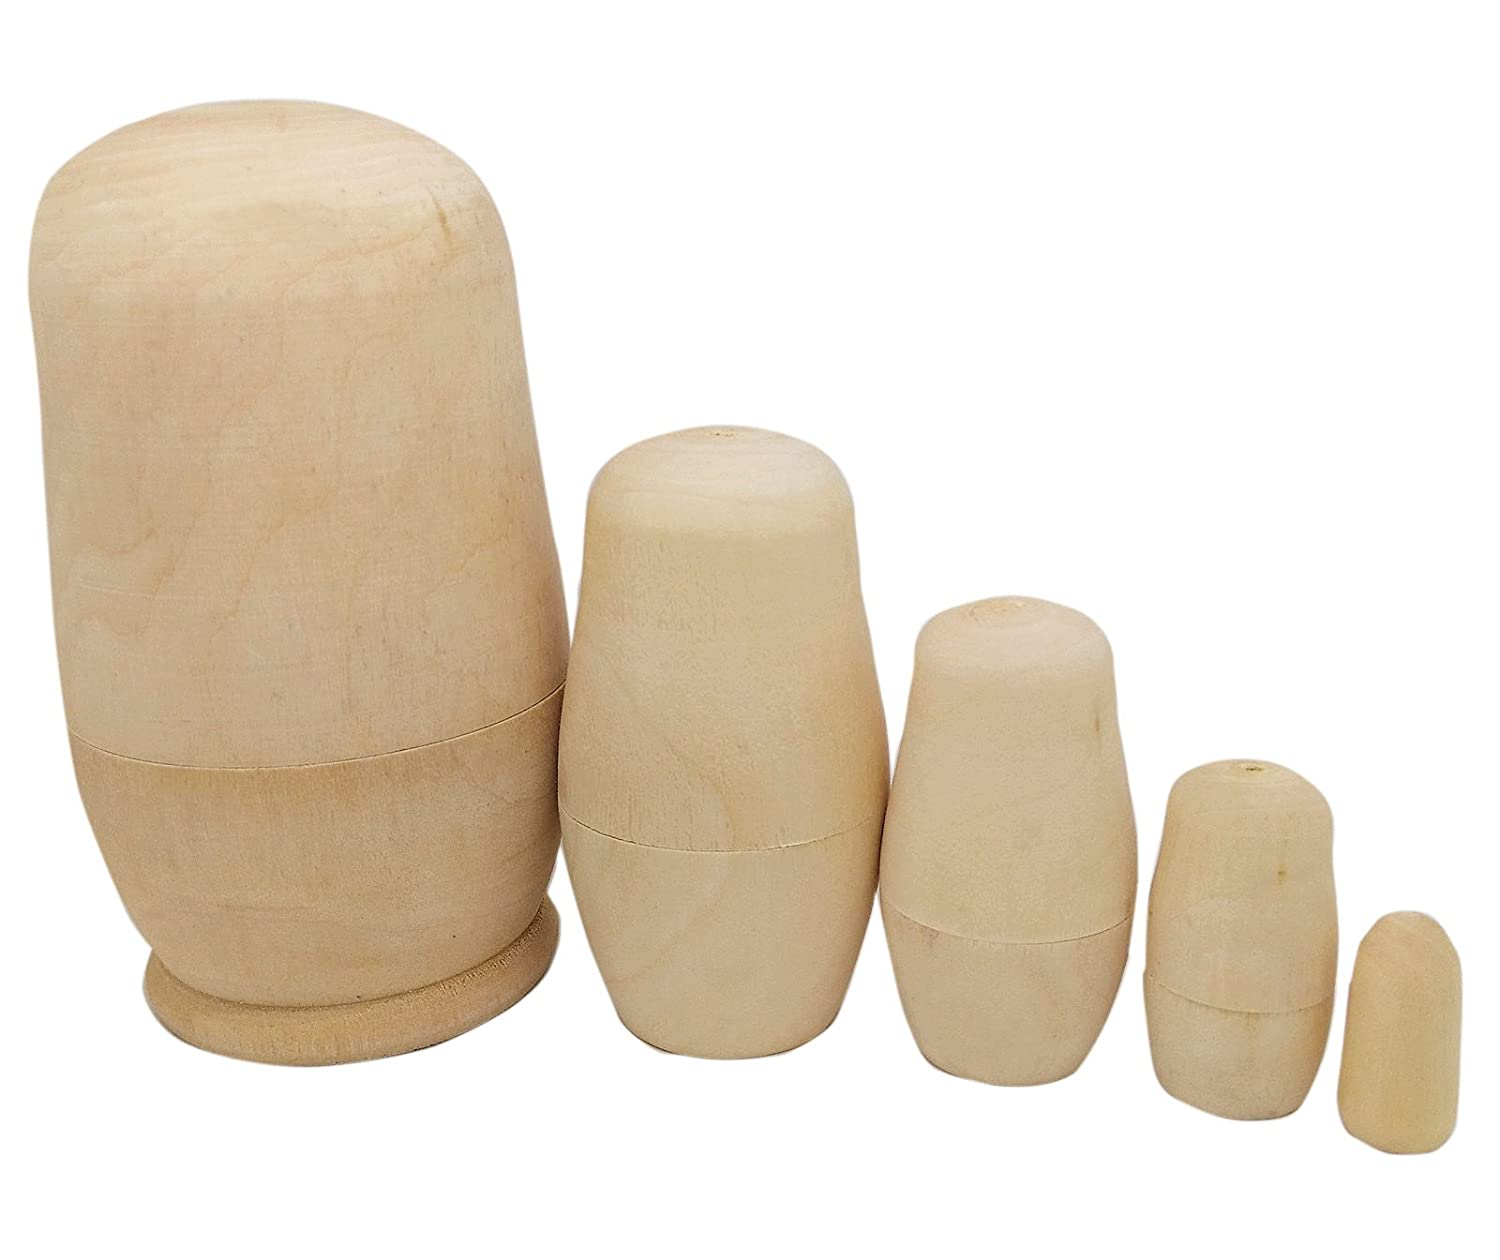 Blank Doll Make Your Own Doll MAGIKON 5inch Set of 5pcs Unpainted Russian Nesting Doll